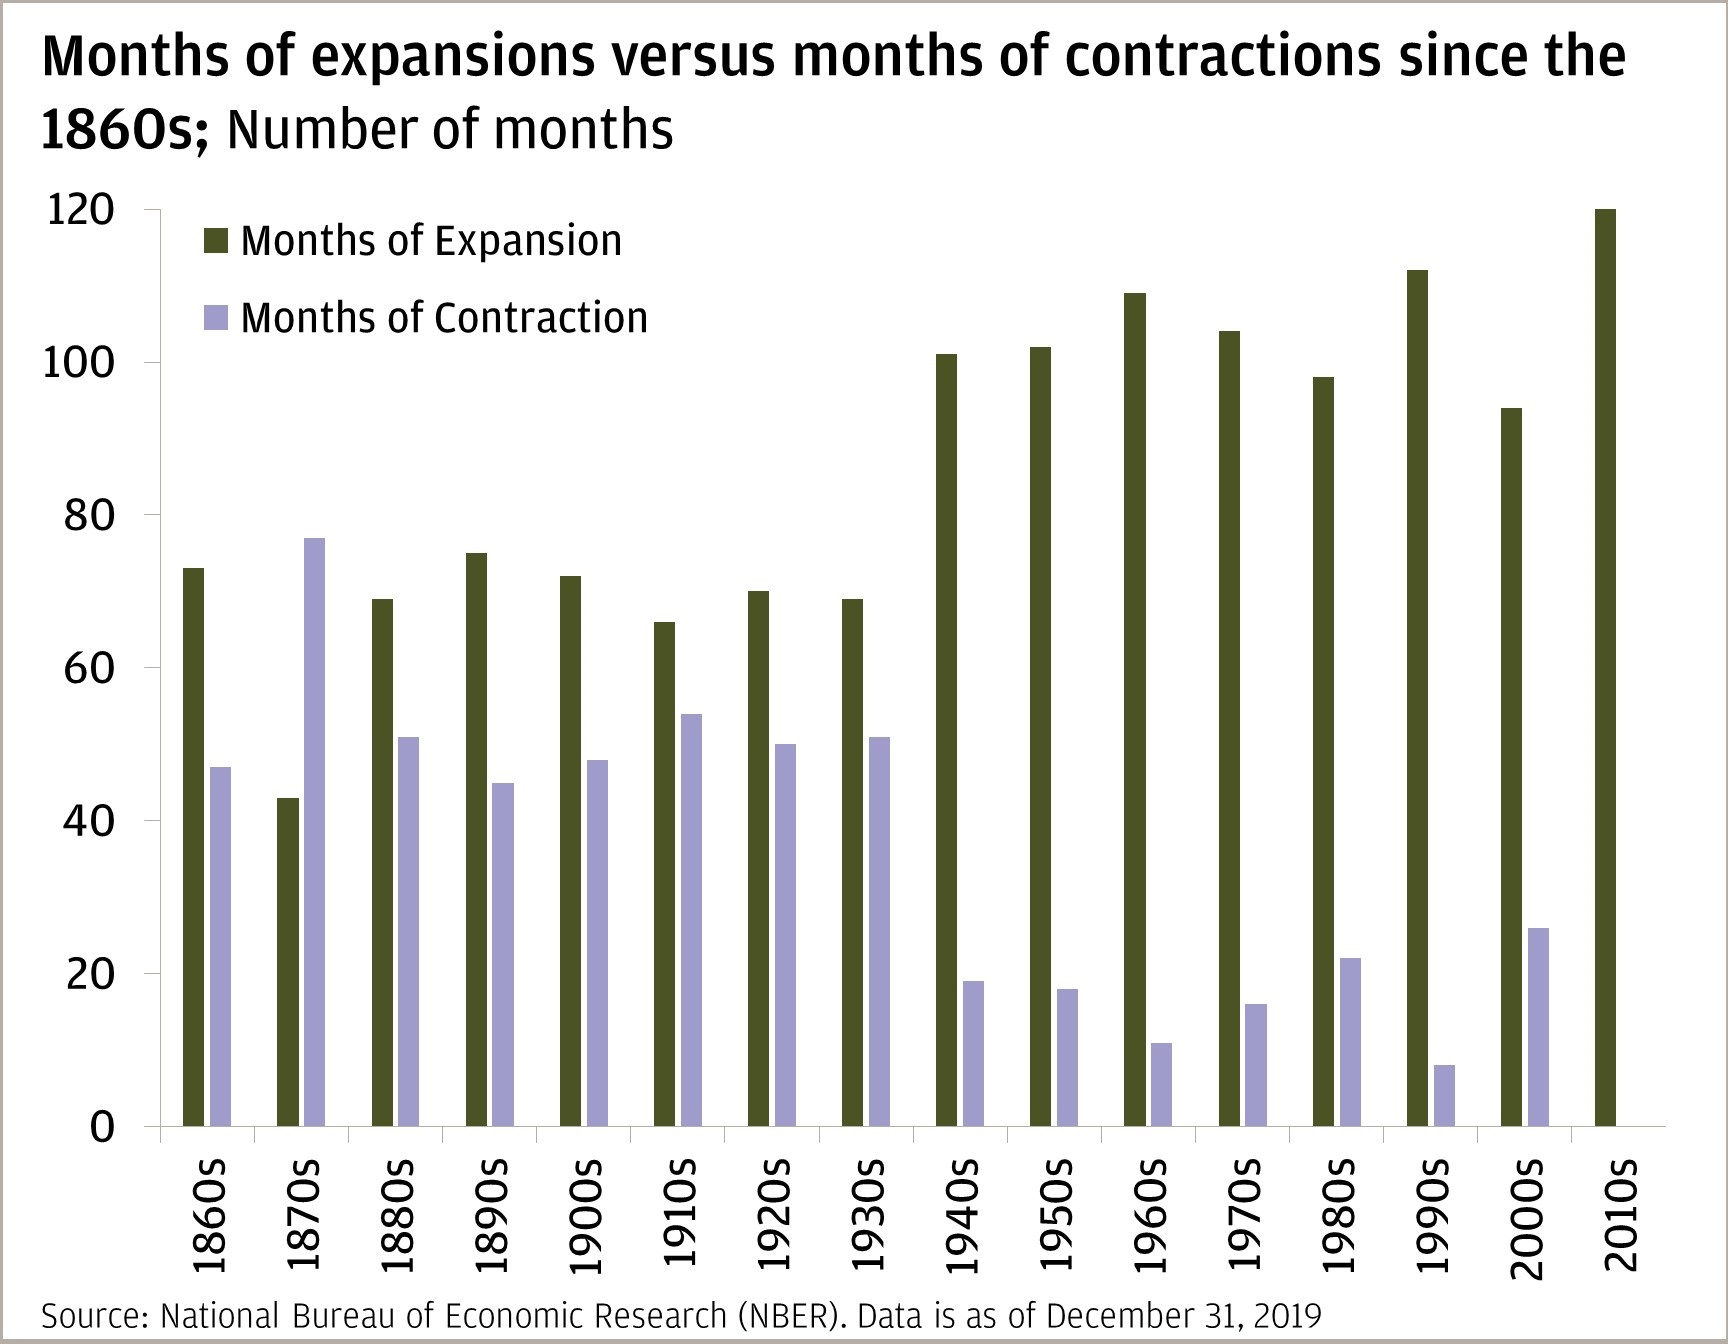 Chart 1: This bar chart compares months of U.S. economic expansions versus months of economic contractions, by decade, from 1860 through the 2010s.